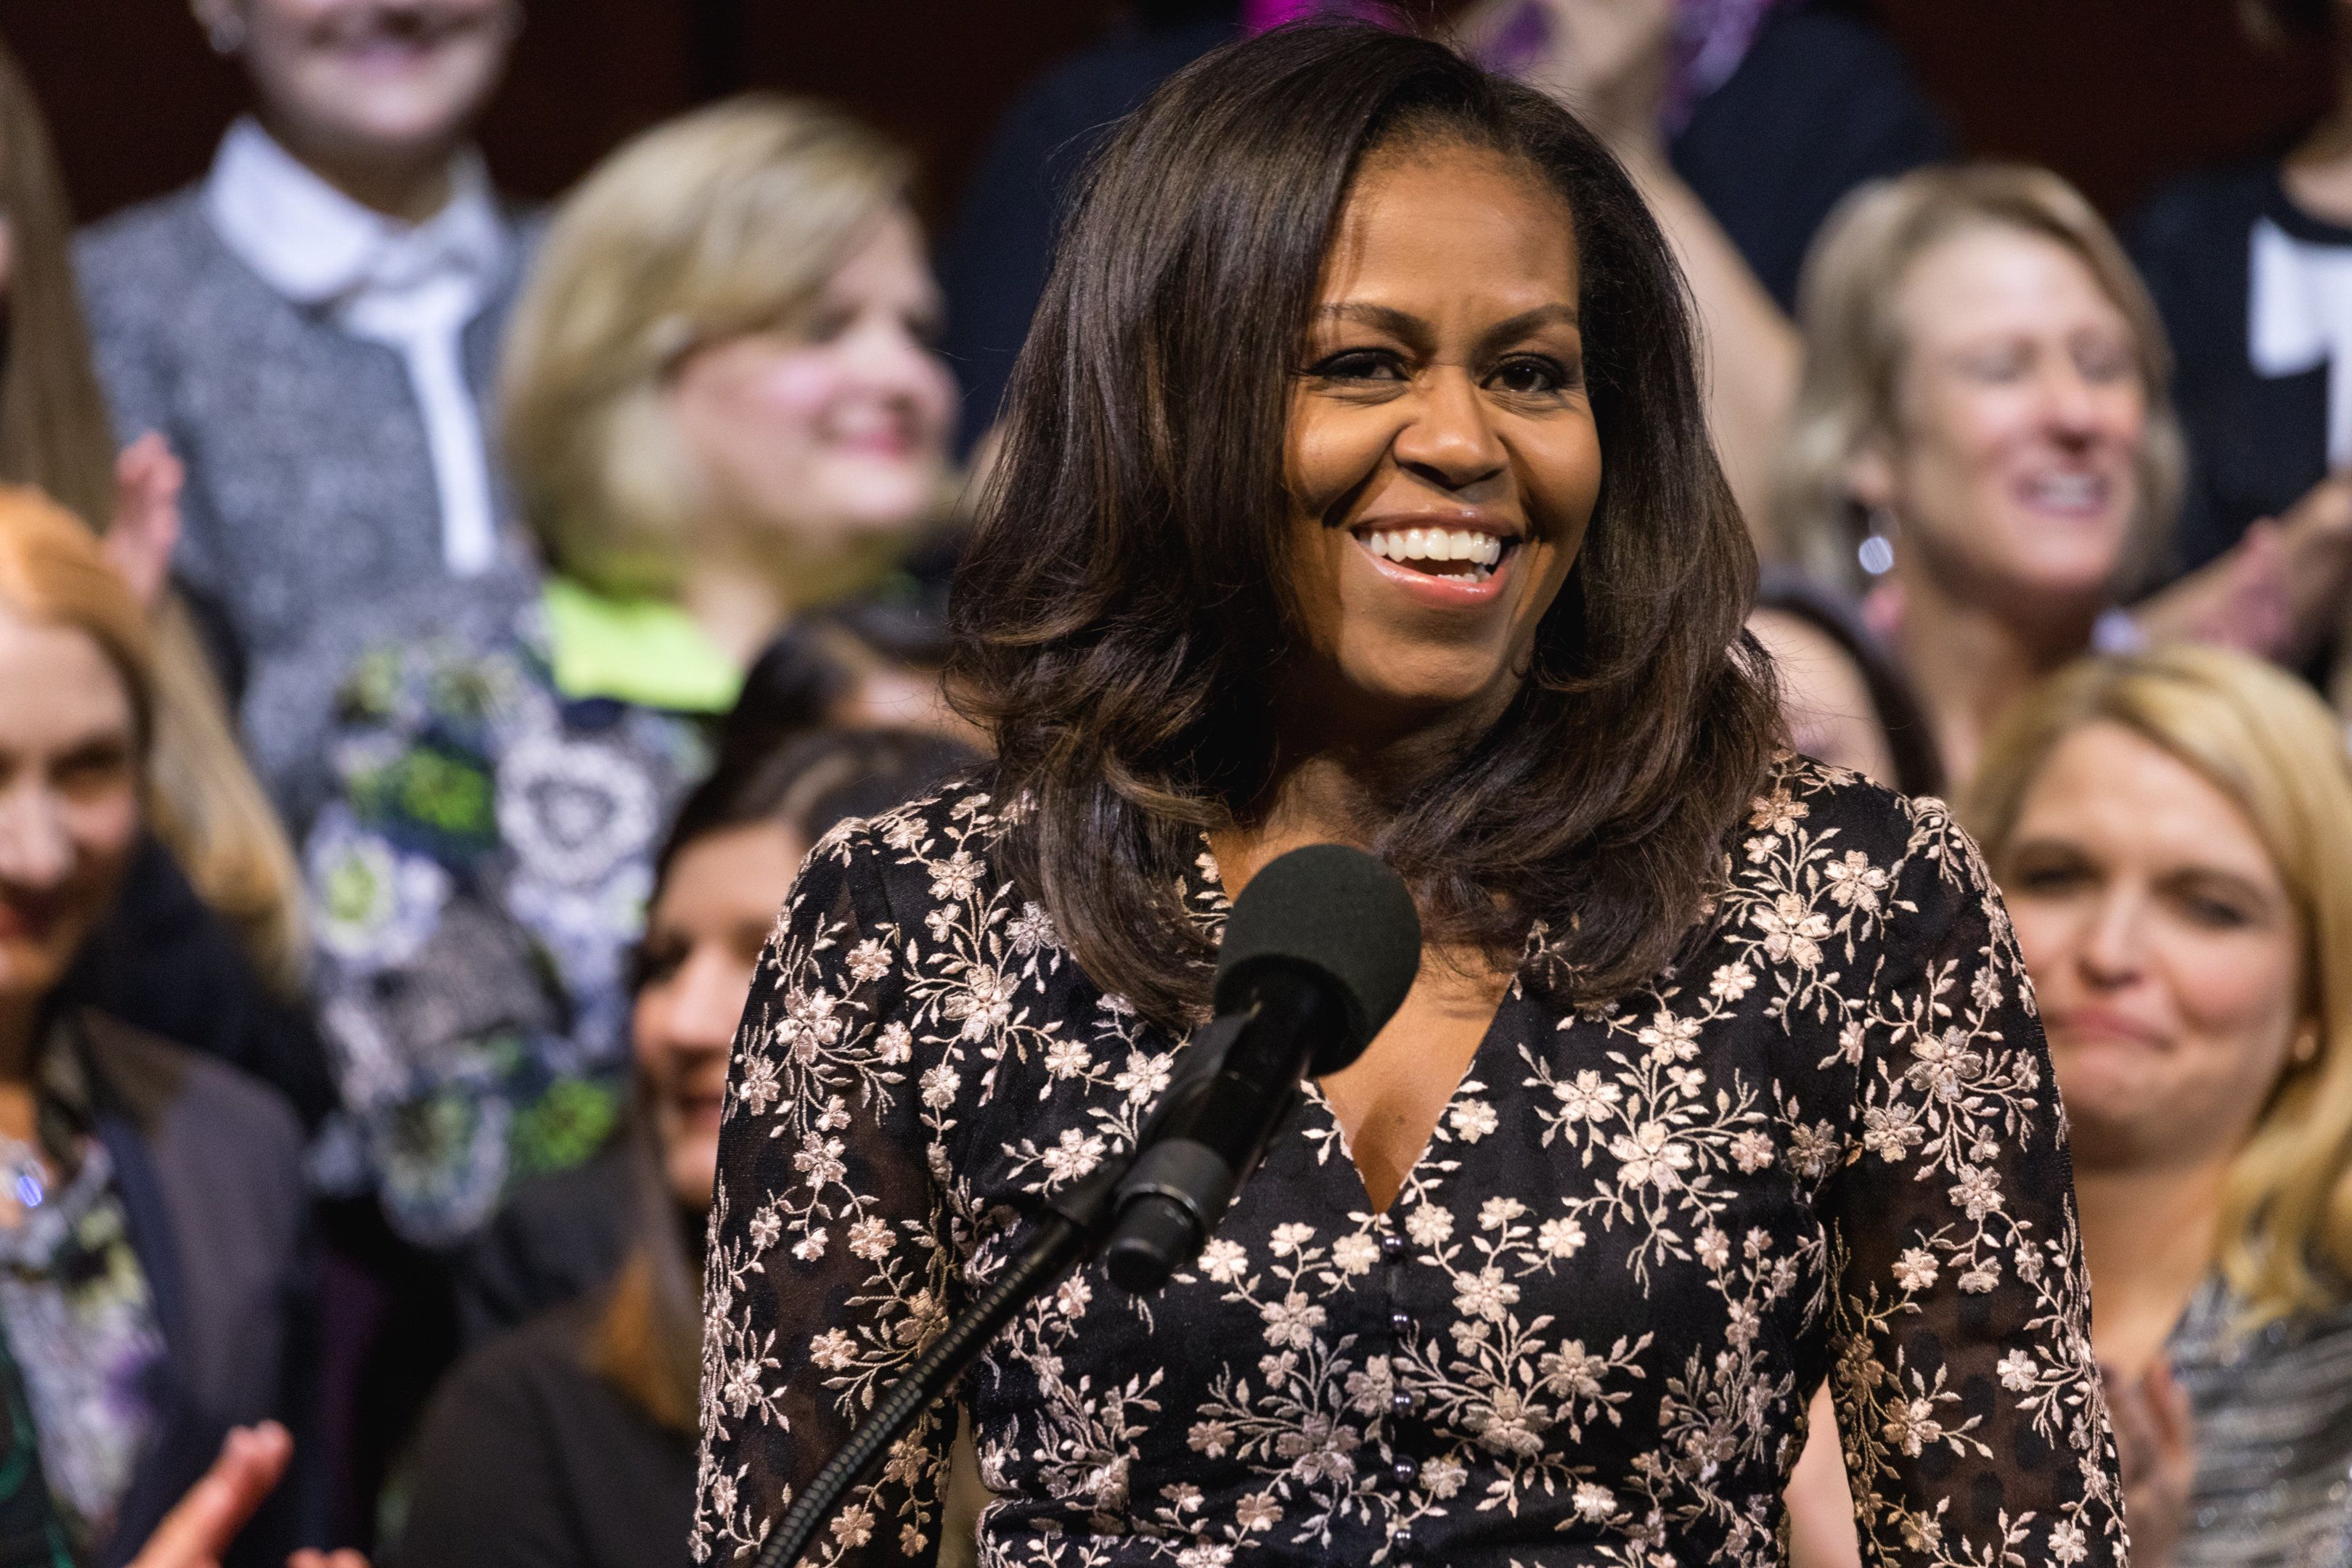 Michelle Obama Tells Students To Keep Fighting: 'We're Behind You Every Step'